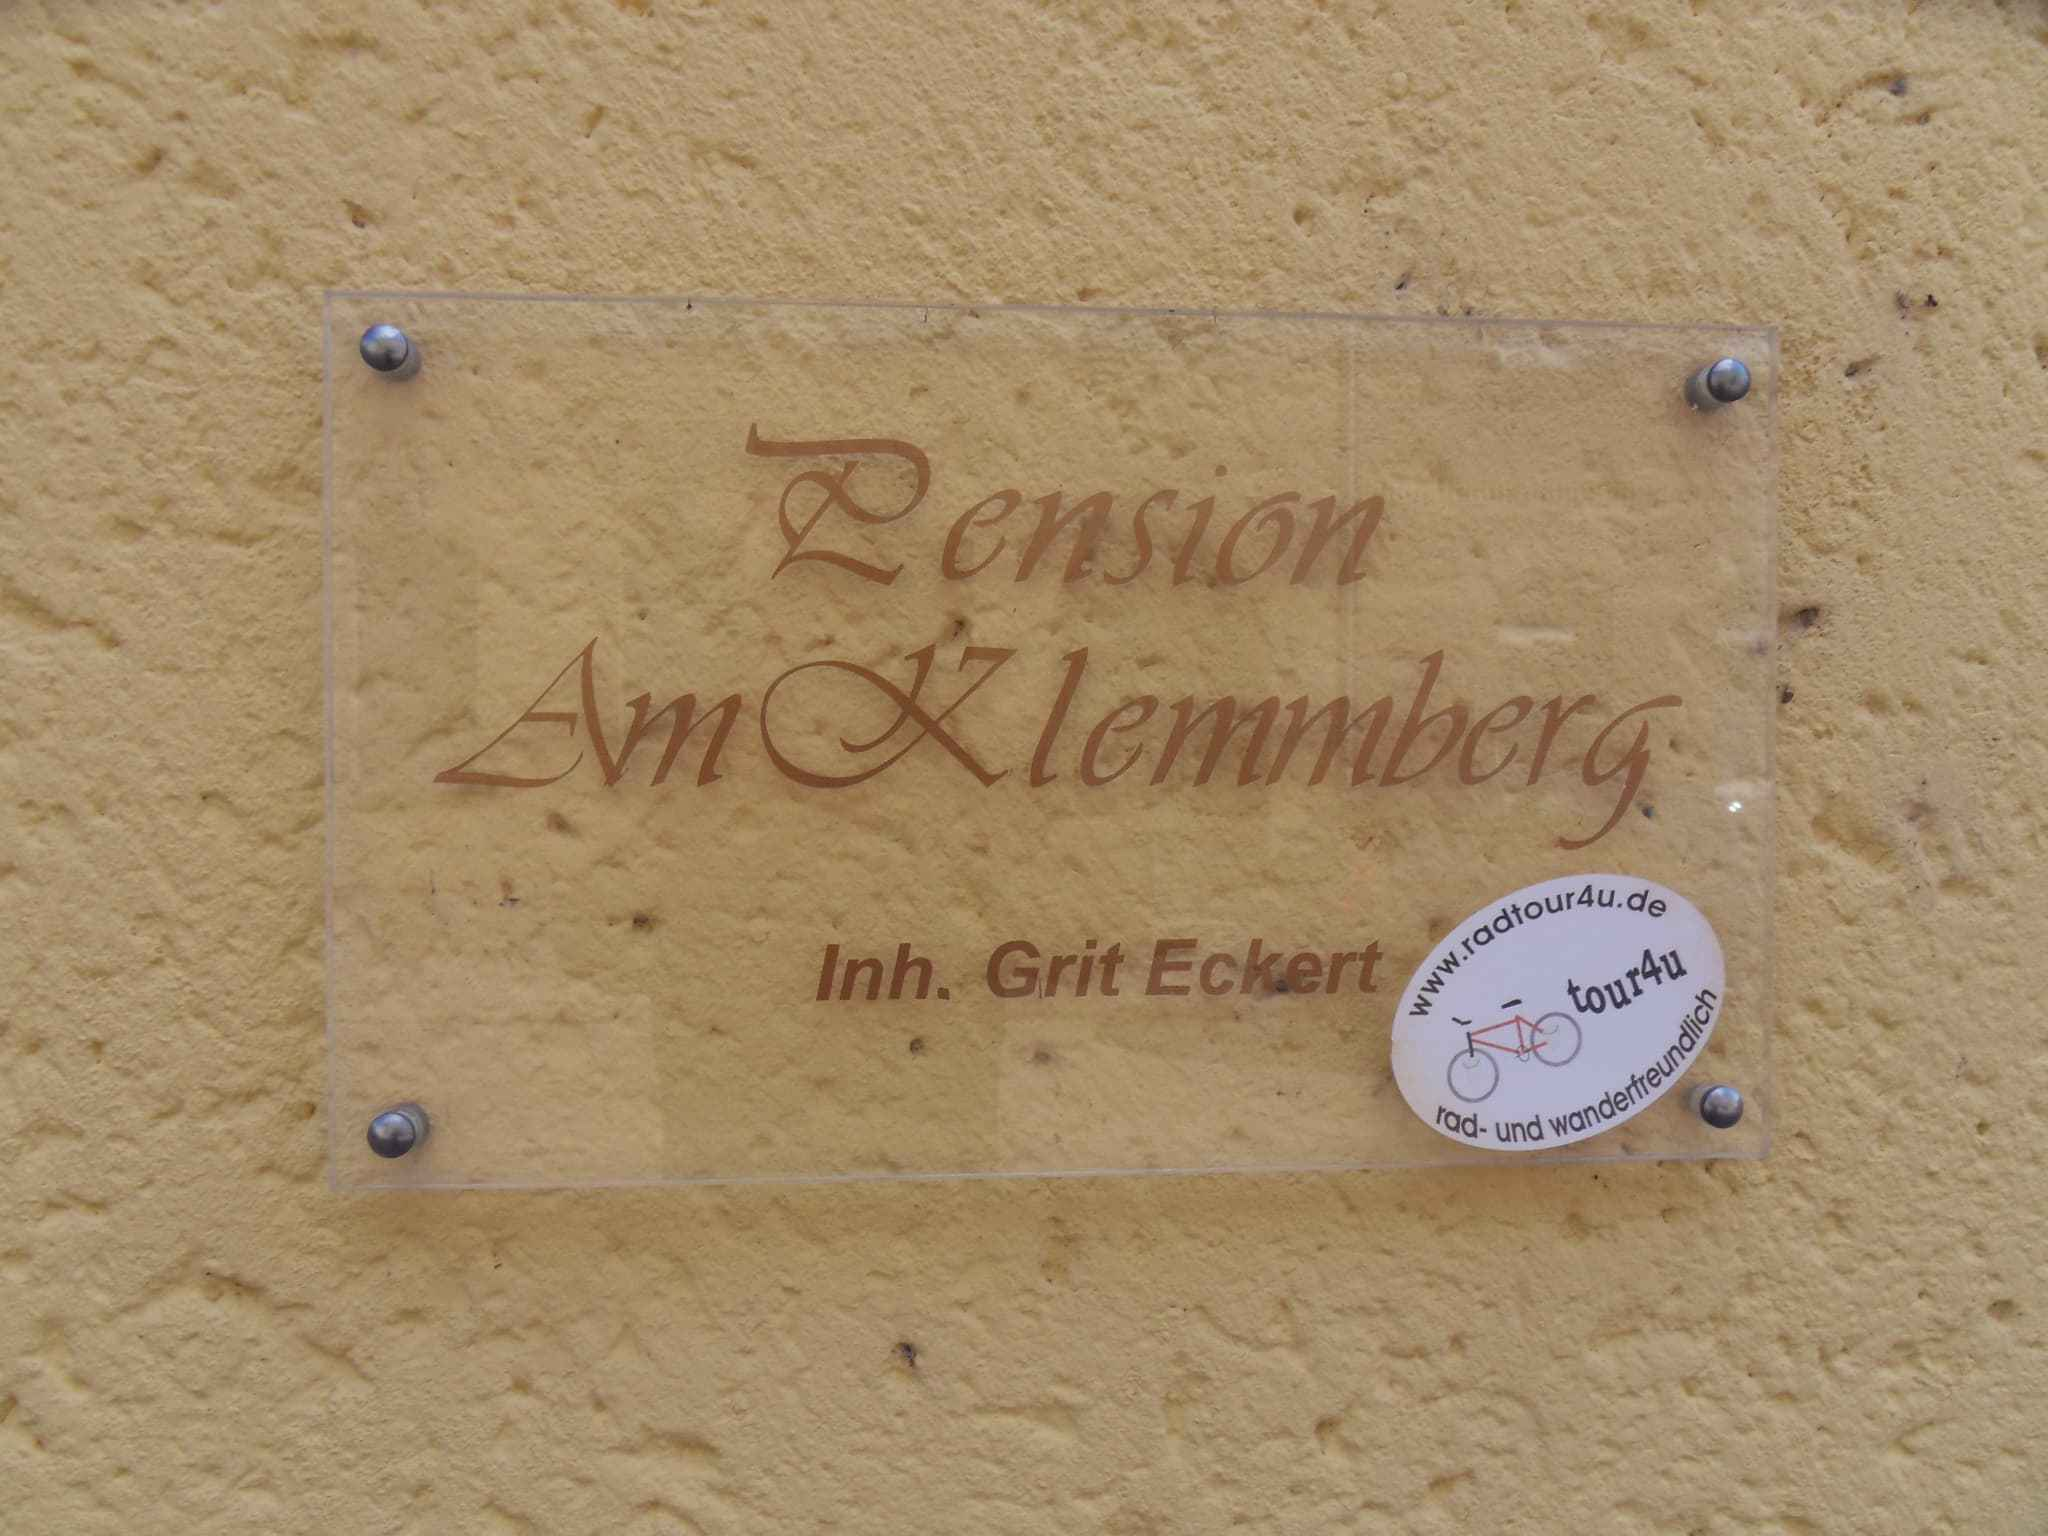 Pension am Klemmberg die Pension